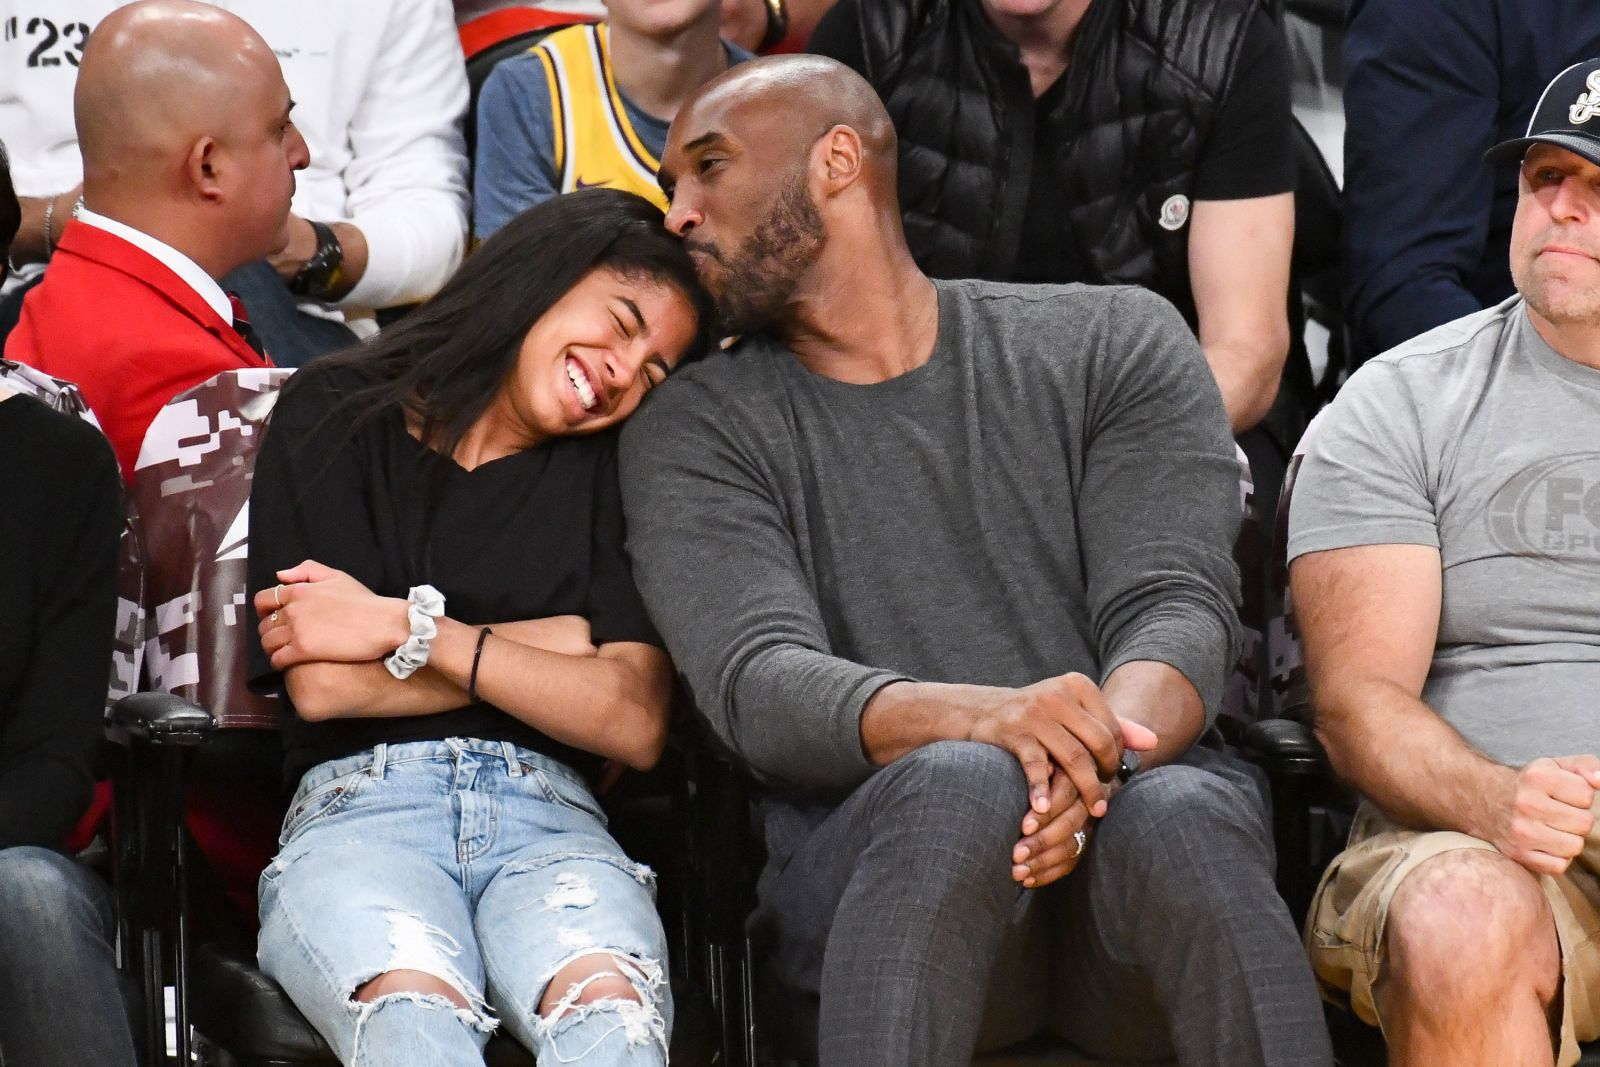 Kobe Bryant and his daughter Gianna at a Los Angeles Lakers game against the Atlanta Hawks in 2019. Both were killed in a helicopter crash in Calabasas, Calif. on Jan. 26. (Courtesy of CNN)